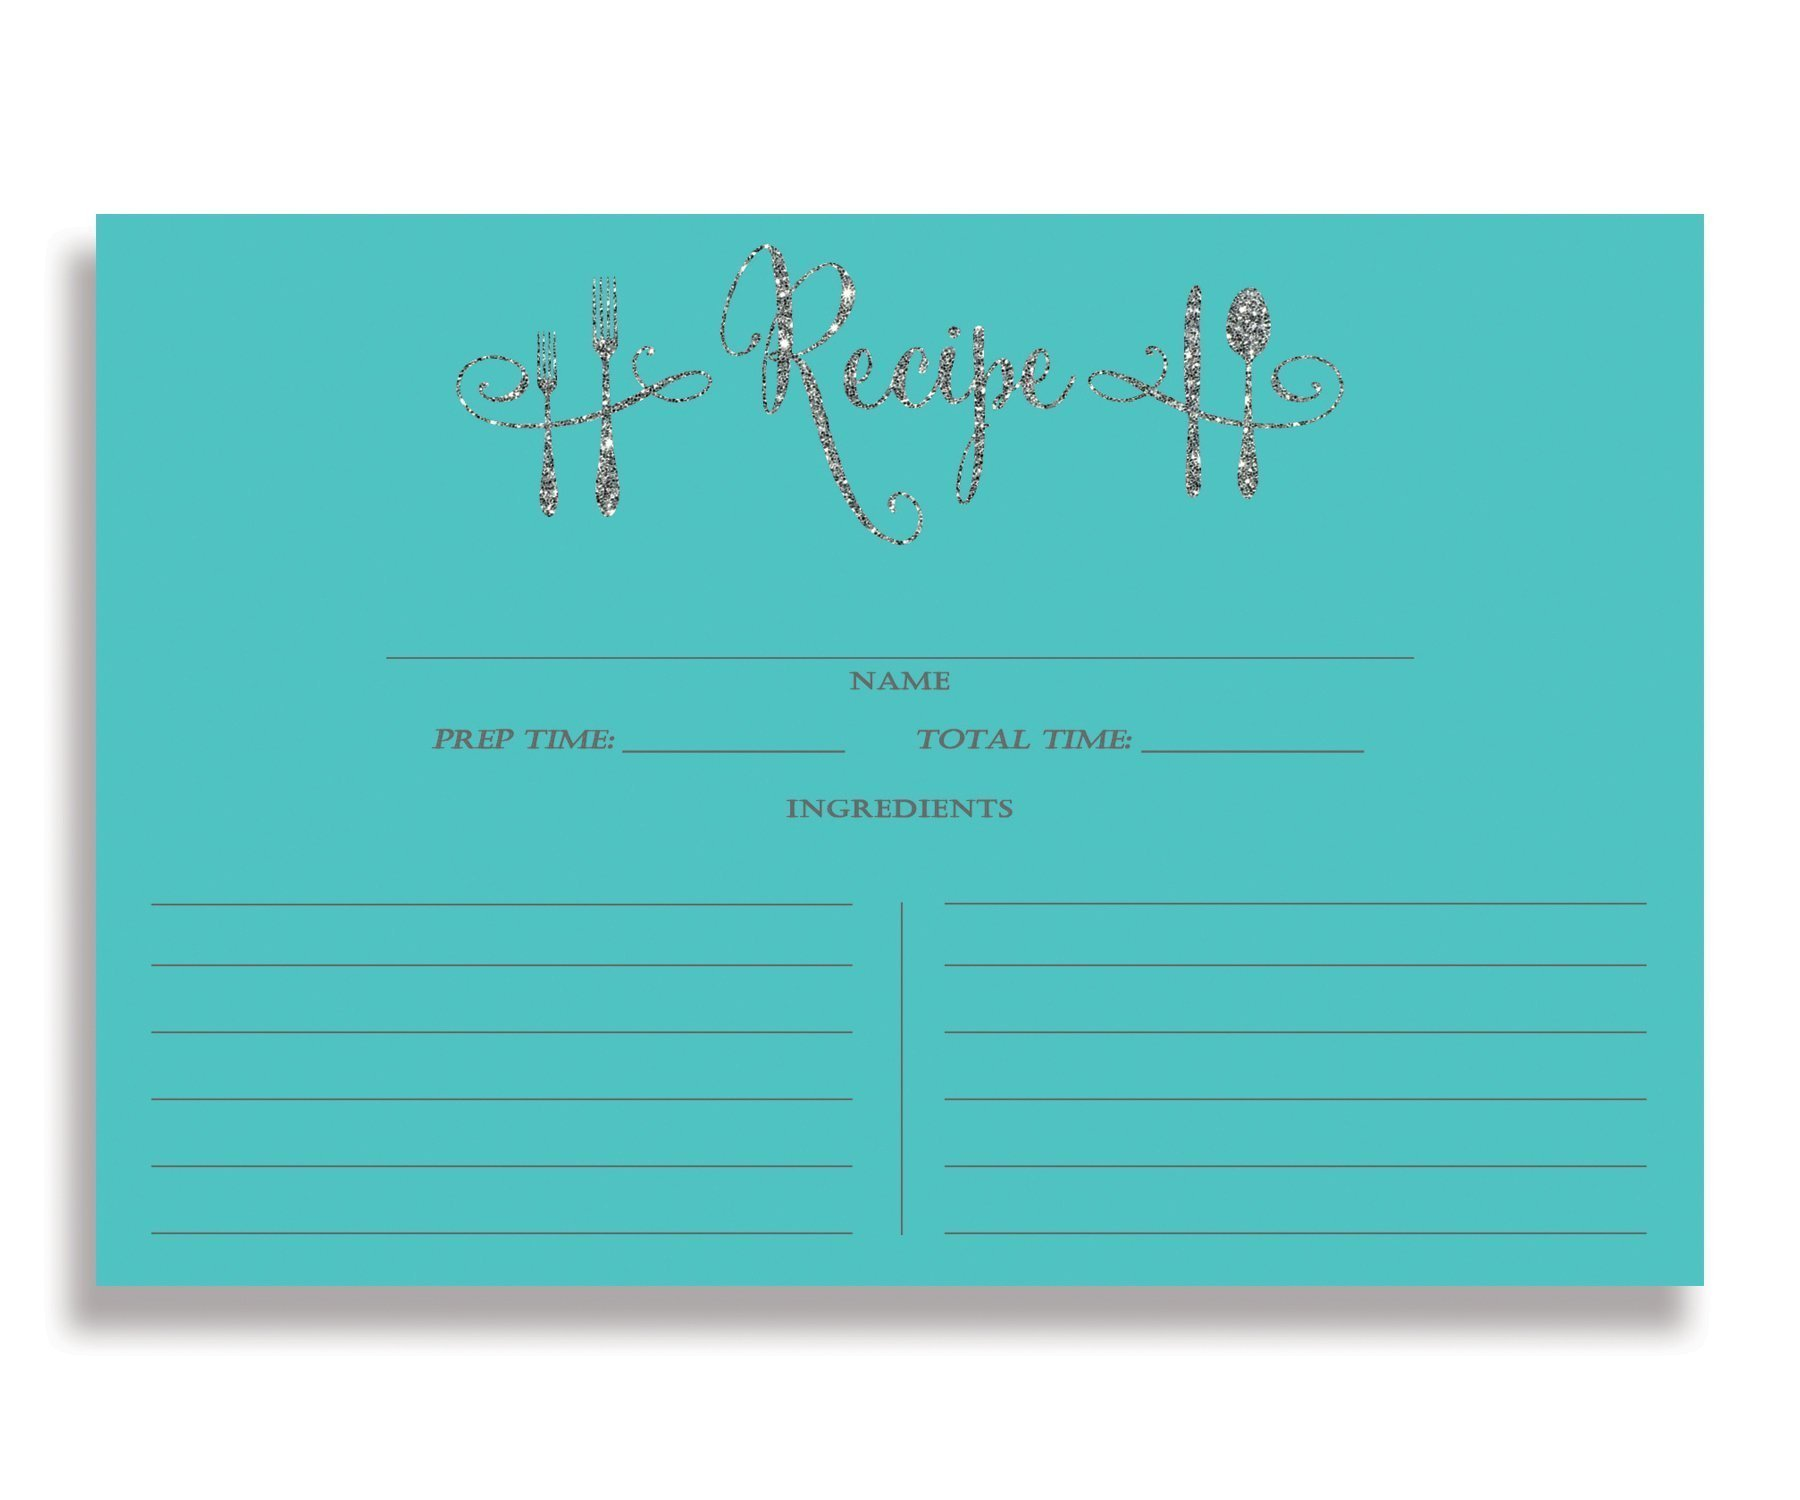 Tiffany Blue Recipe Cards (Set of 15) 4x6 inches. Double Sided Thick Card Stock Elegant Turquoise Blue and Silver Glitter Calligraphy Recipe Cards | Mila Tiffany